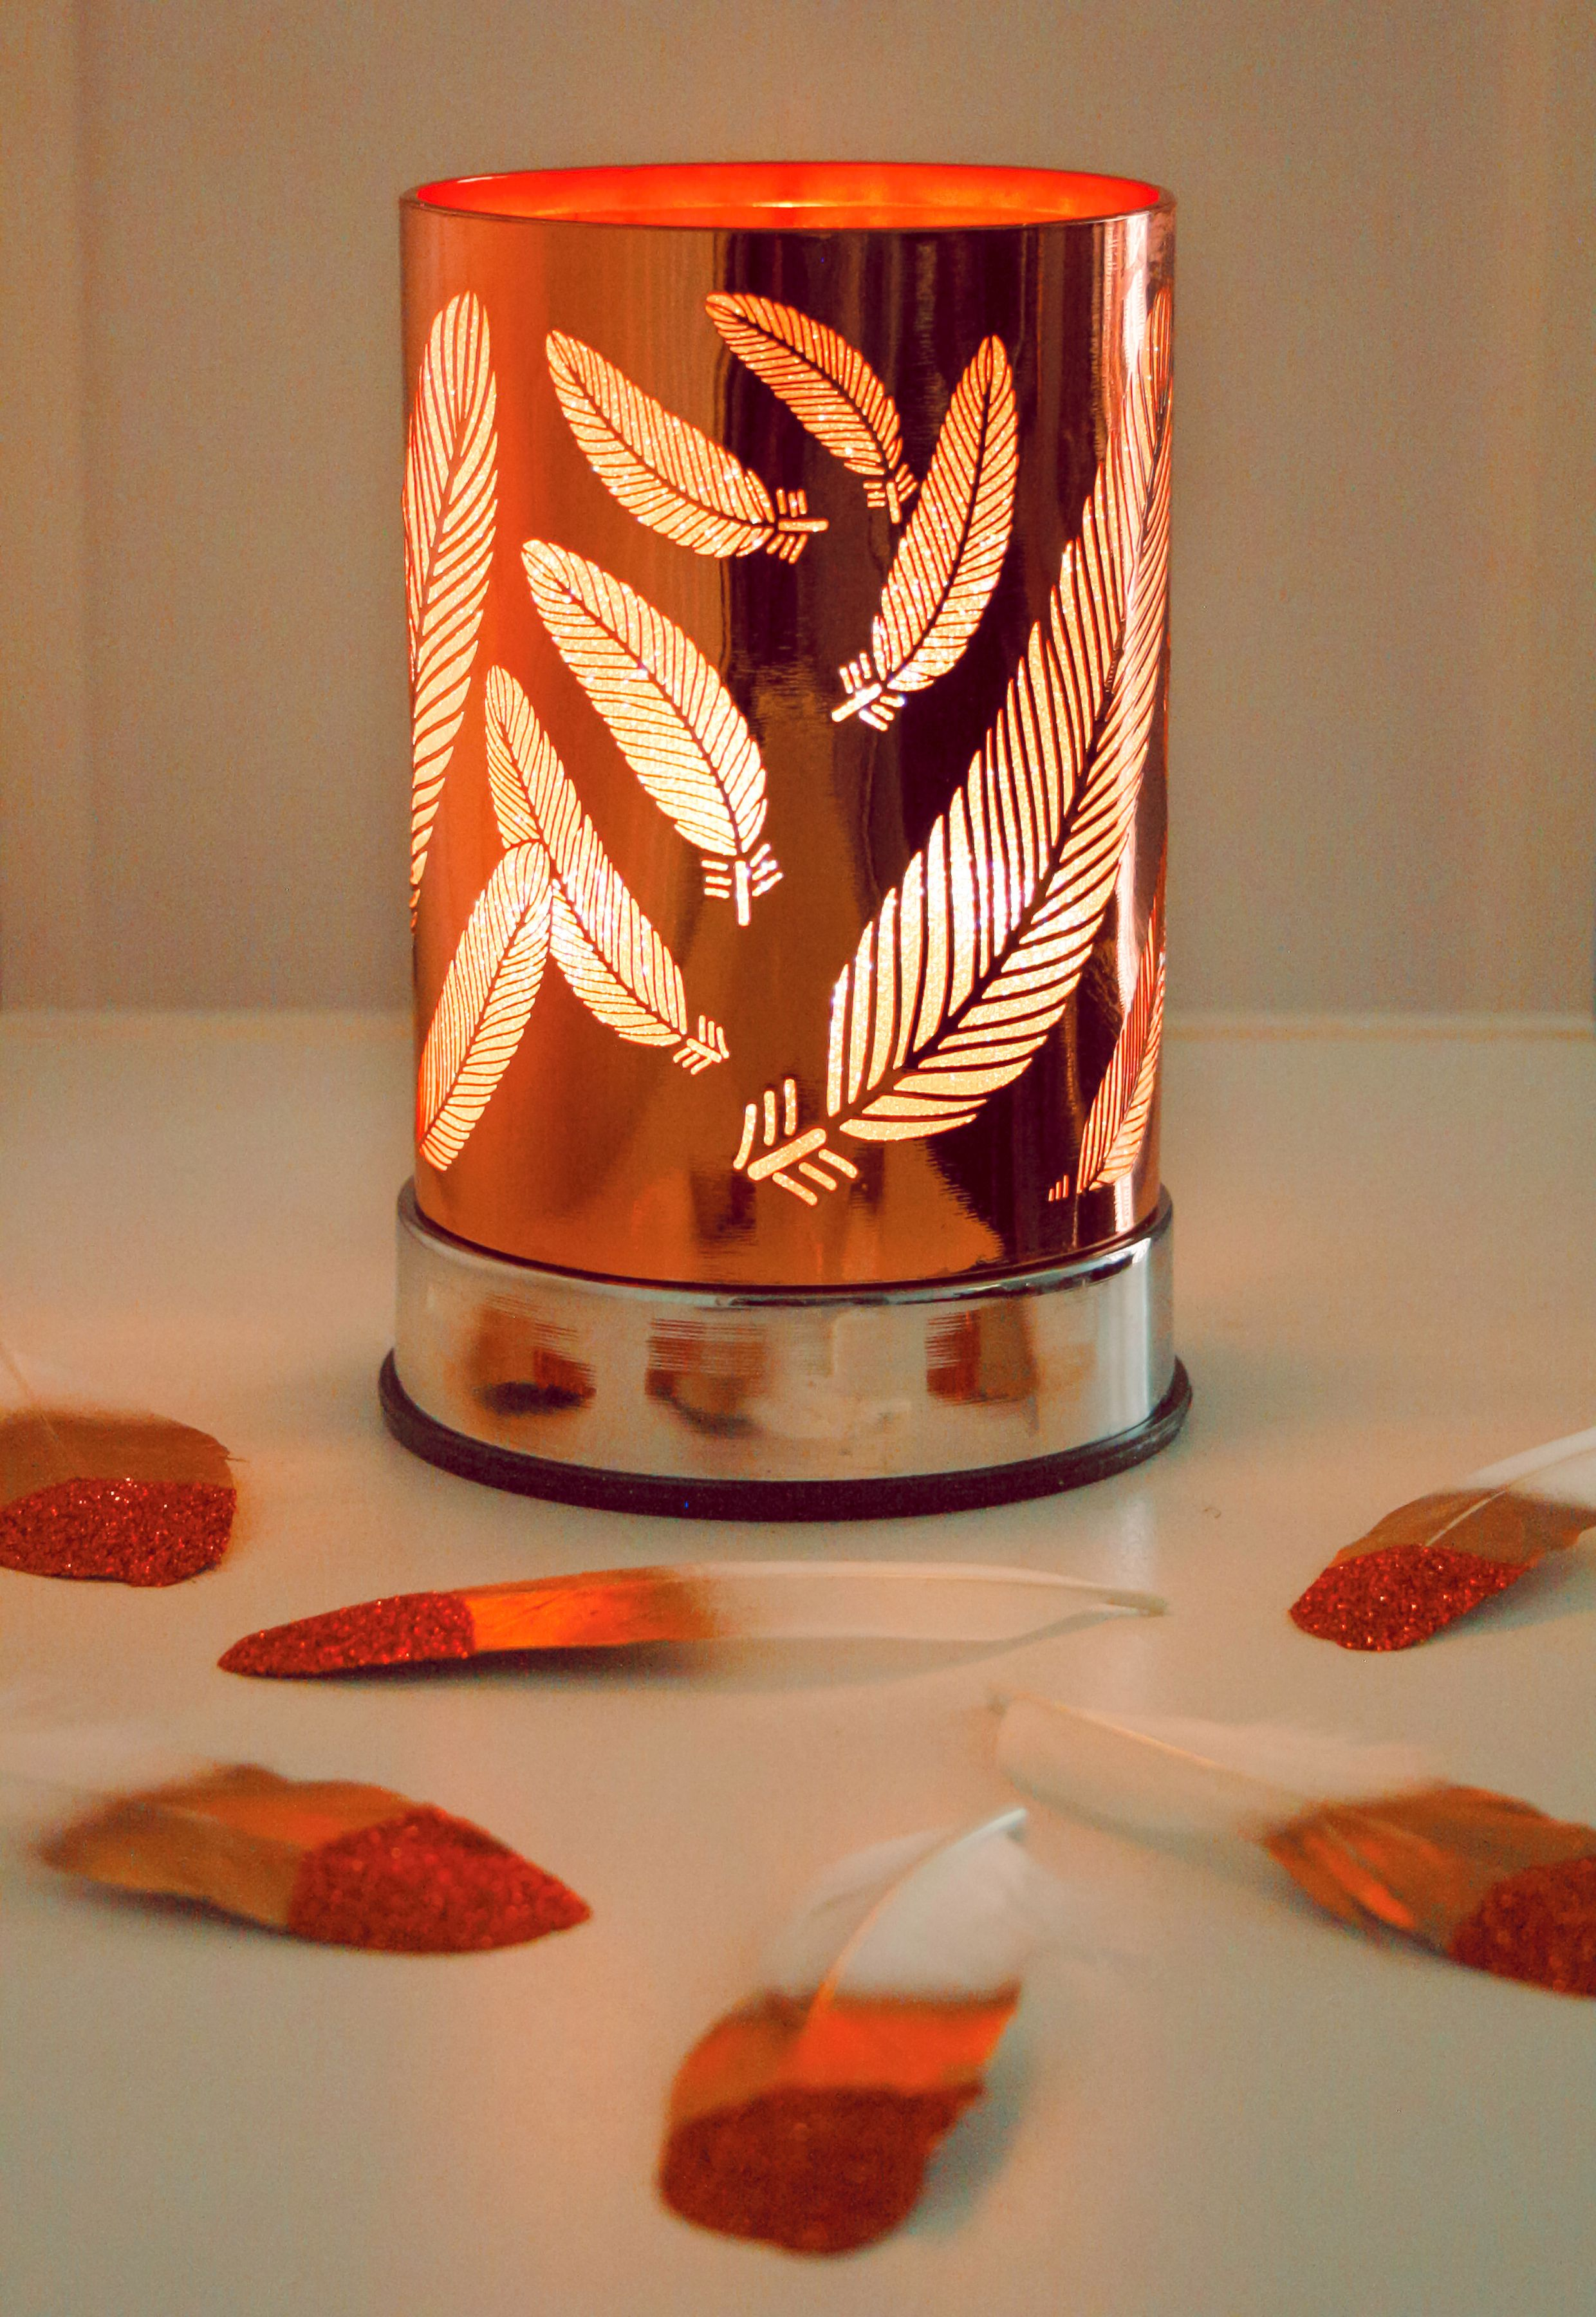 Copper Feather Lantern Scentchips Com Warmers En All Warmers Touch Warmers Copper Feather Lantern Html Scentchipsusa Wax Melters Soy Wax Melts Wax Melts